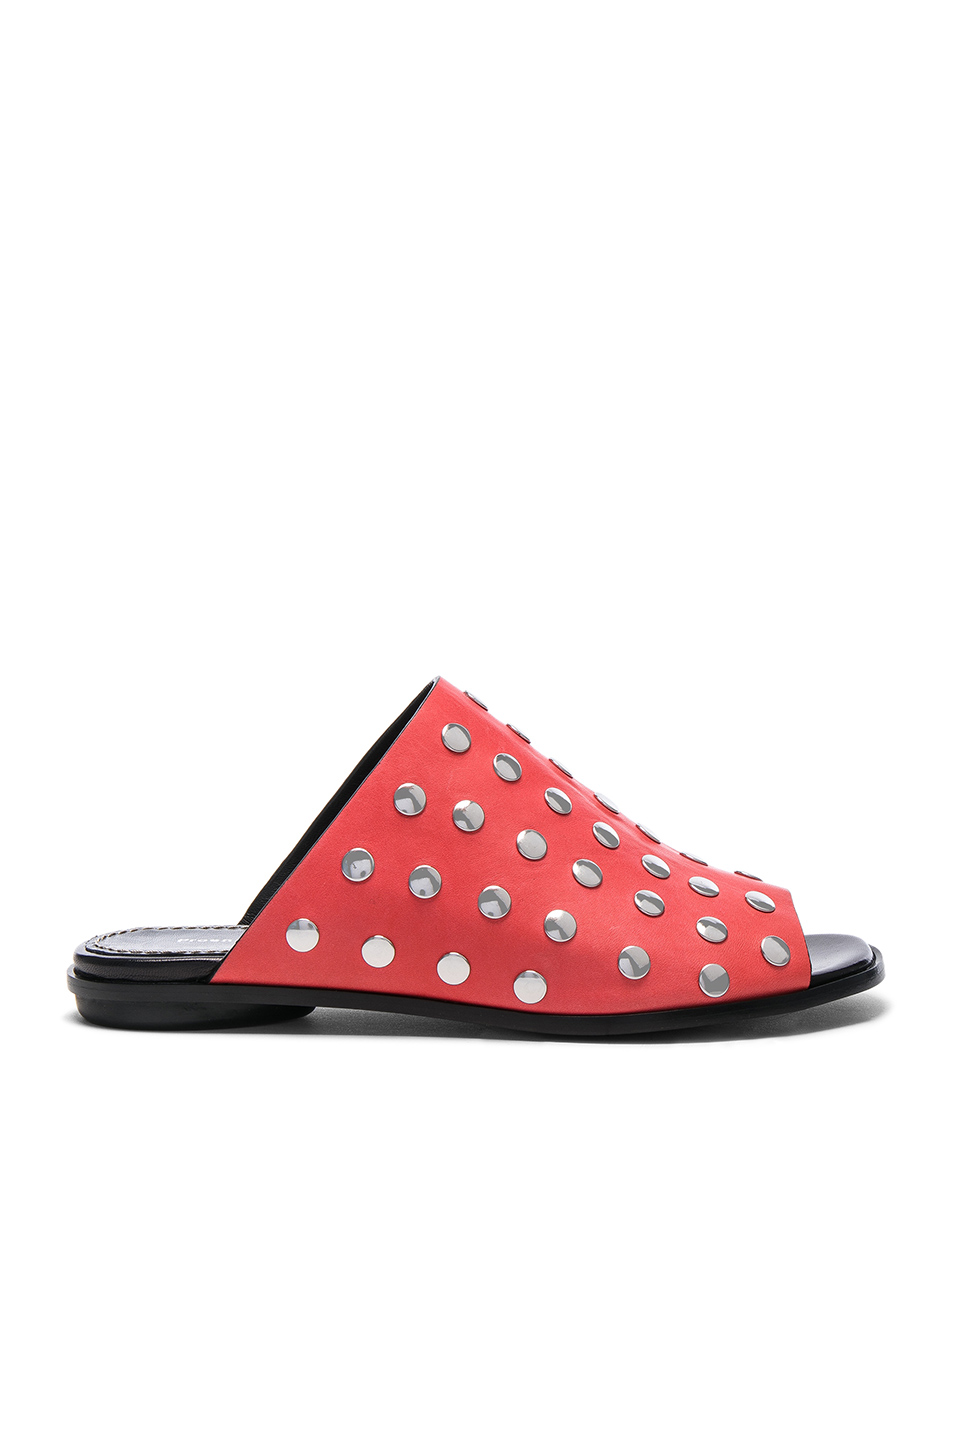 Proenza Schouler Studded Leather Sandals in Red